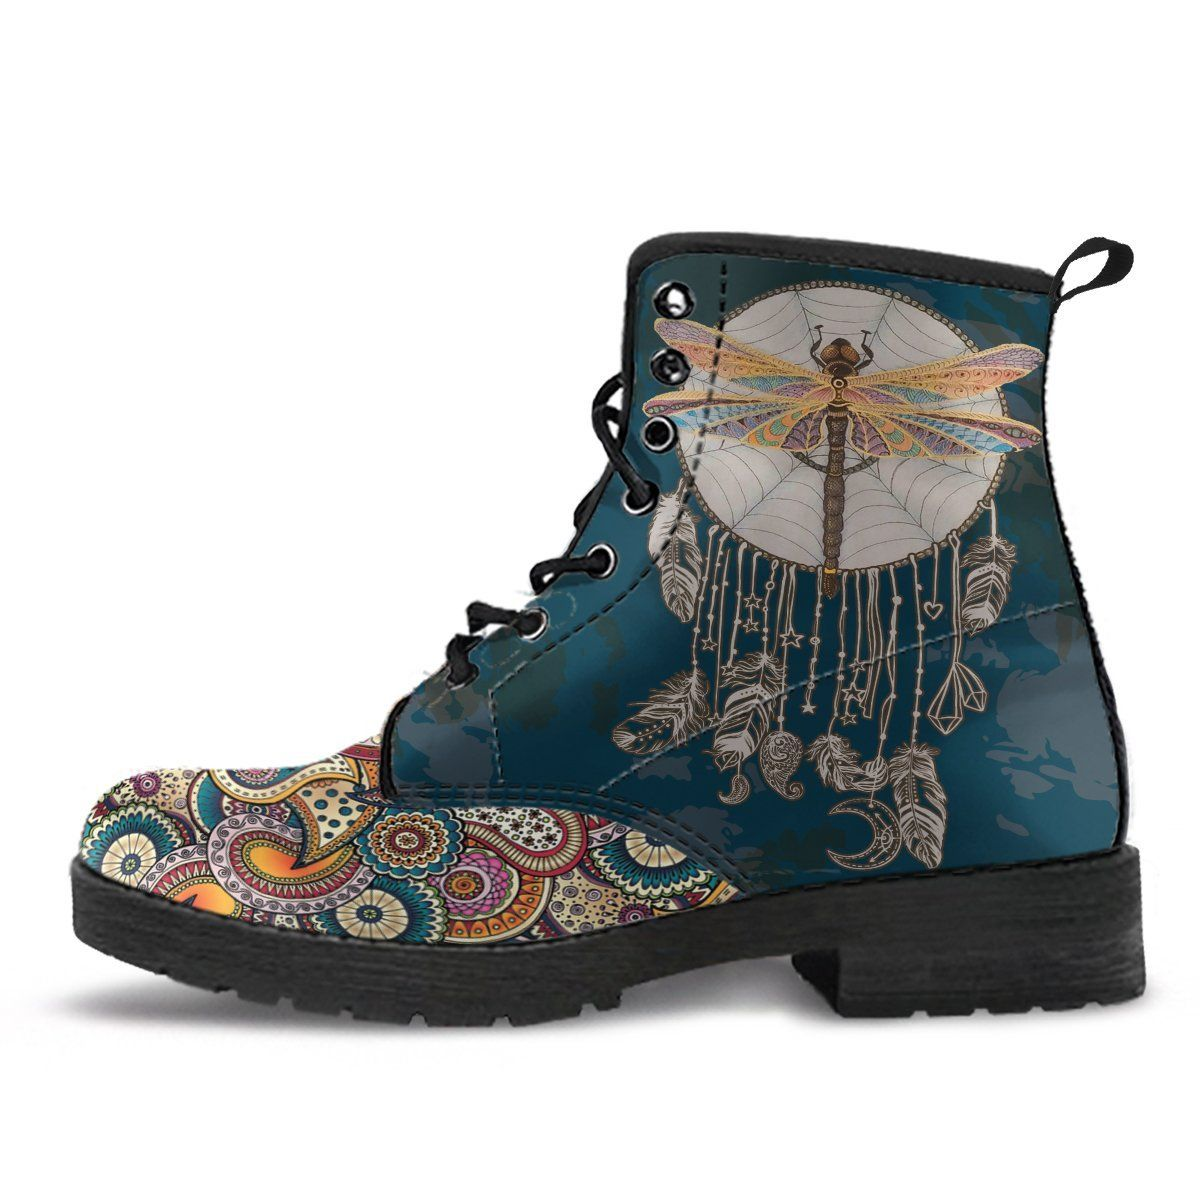 Women/'s Boots Mandala Design Girly Combat boot Combat Style Boots Namaste Boots Vegan Leather Hippie Boot Watercolor Dragonfly